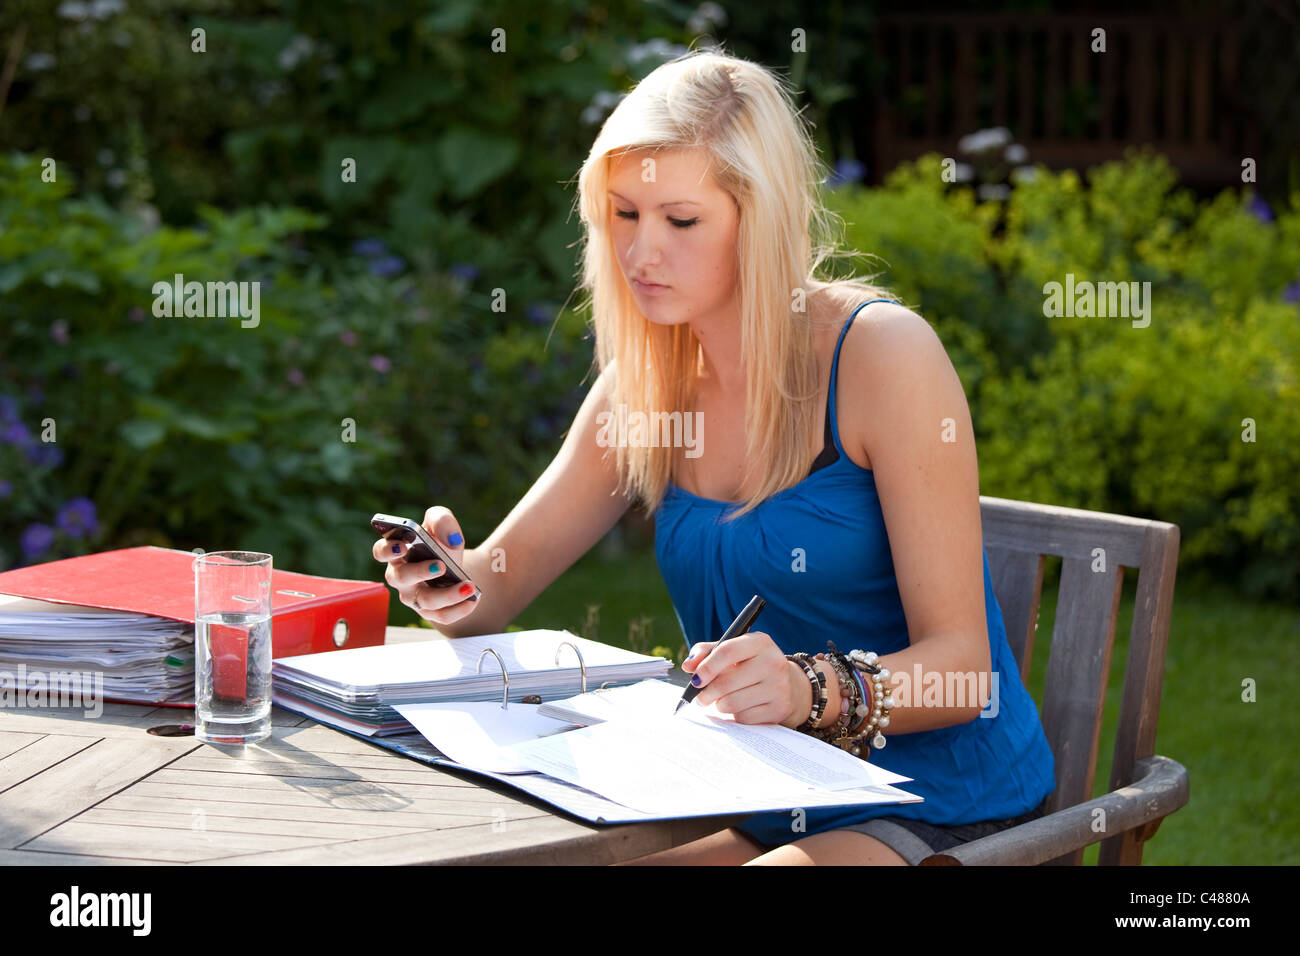 young girl student texting on moblie phone while studying in the garden for exams Stock Photo